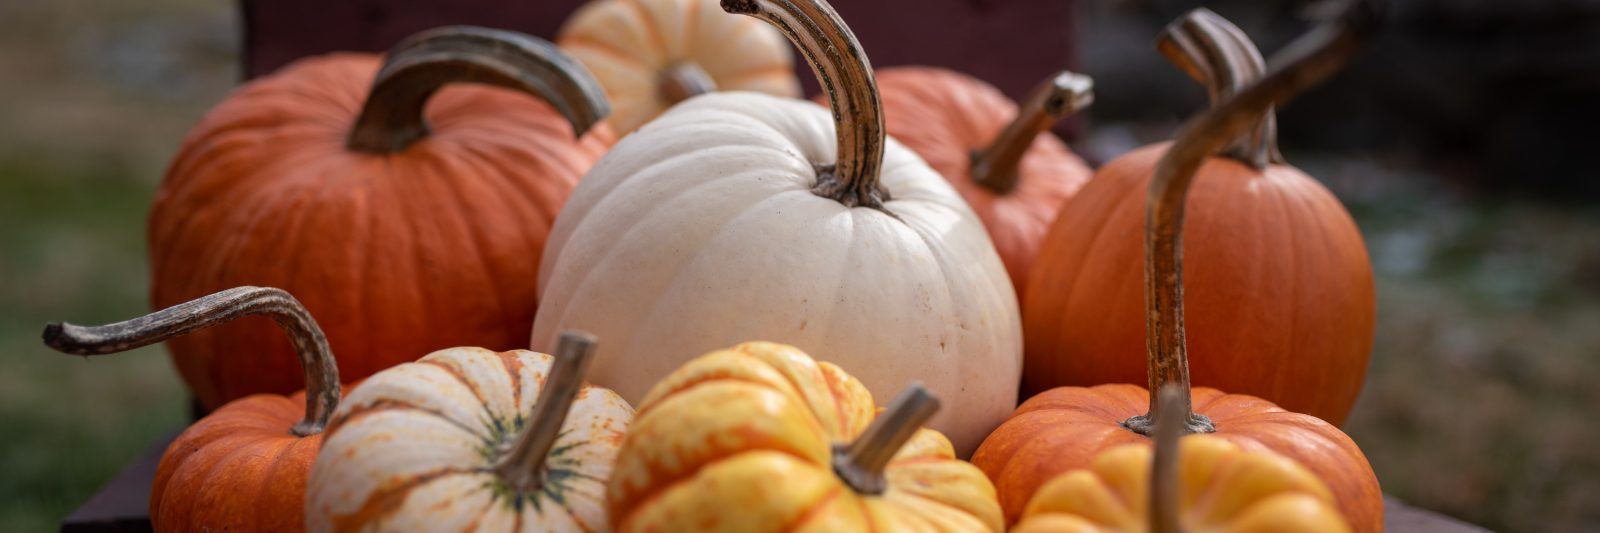 Orange, yellow and white pumpkins arranged in the bed of a wooden wheelbarrow.